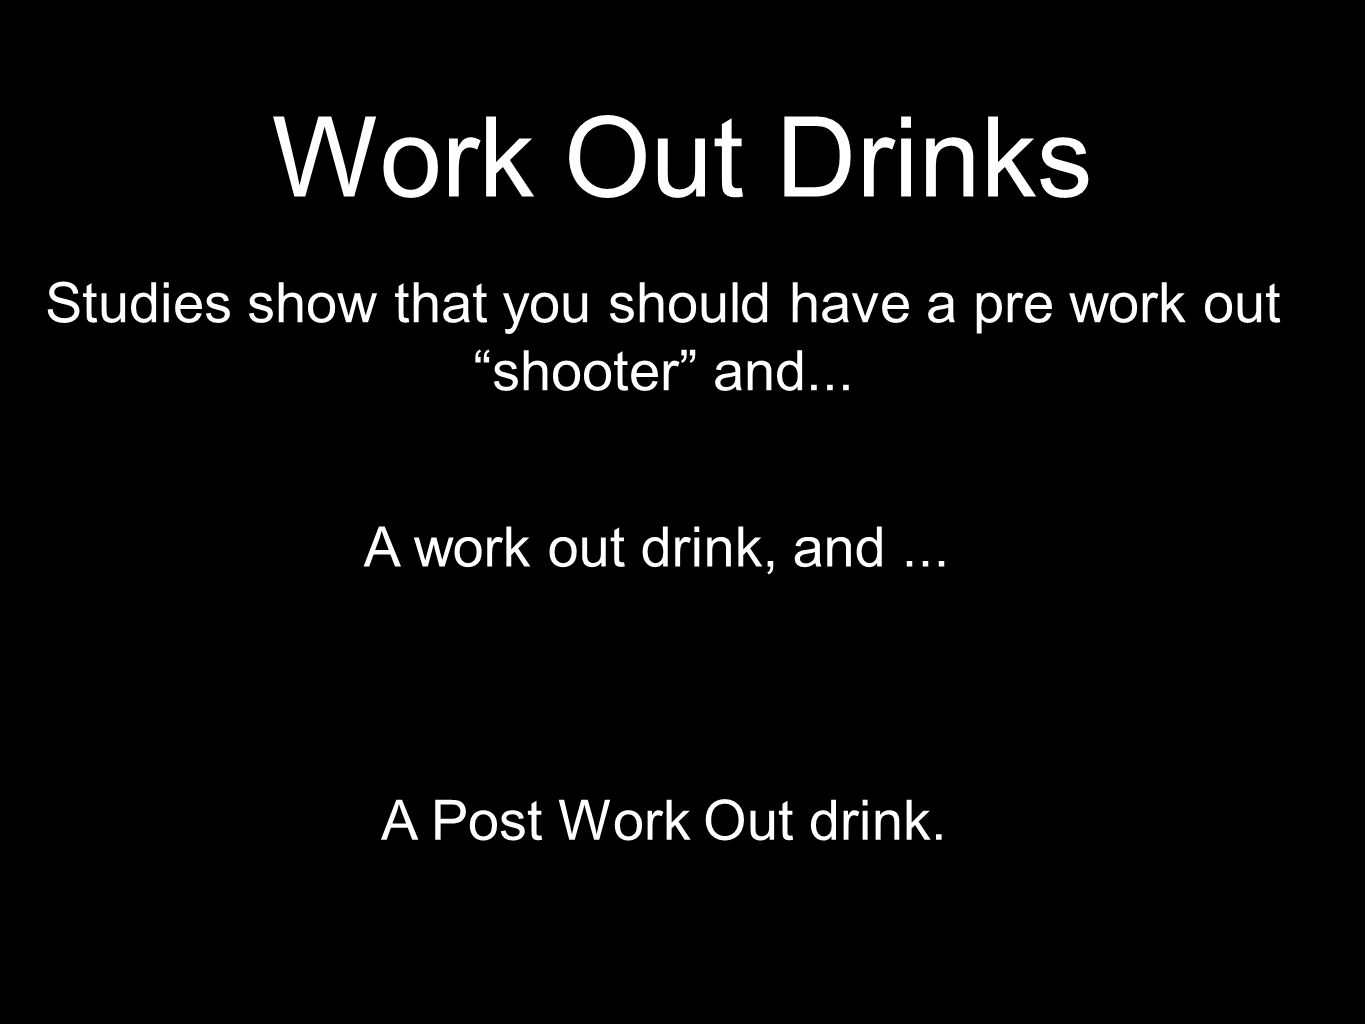 Work Out Drinks A work out drink, and...